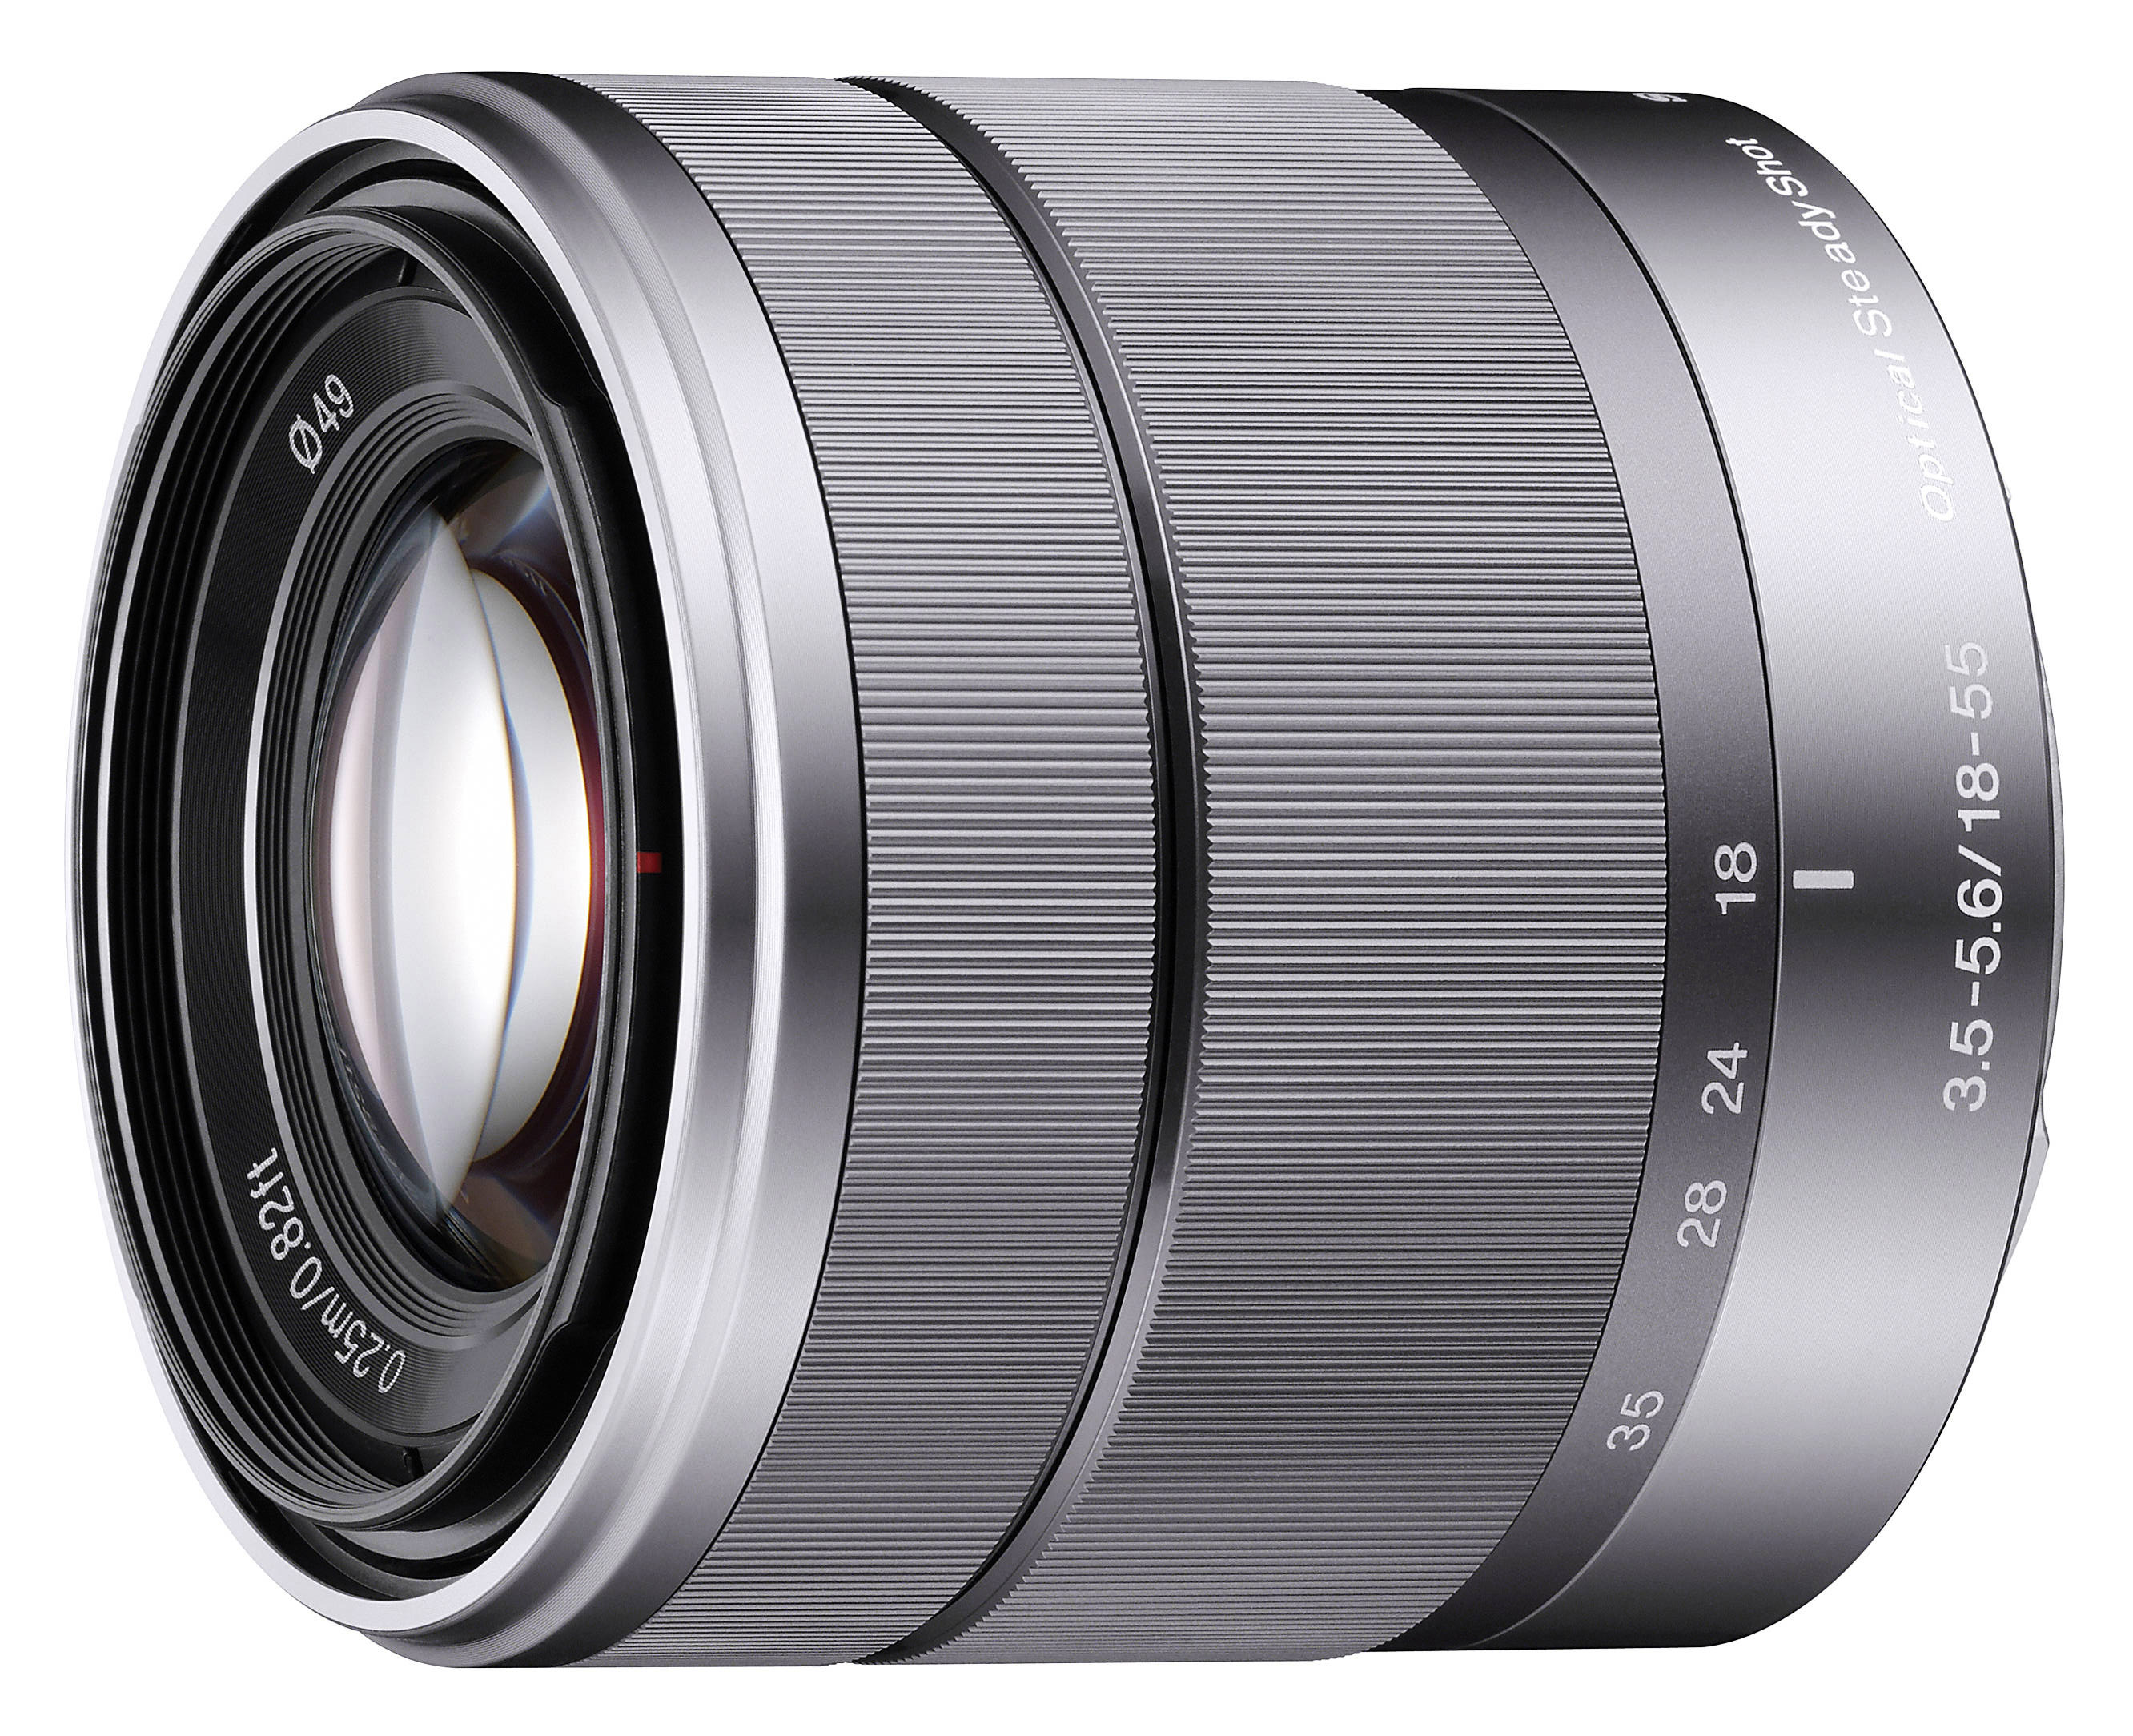 Sony E 18-55mm f/3.5-5.6 OSS